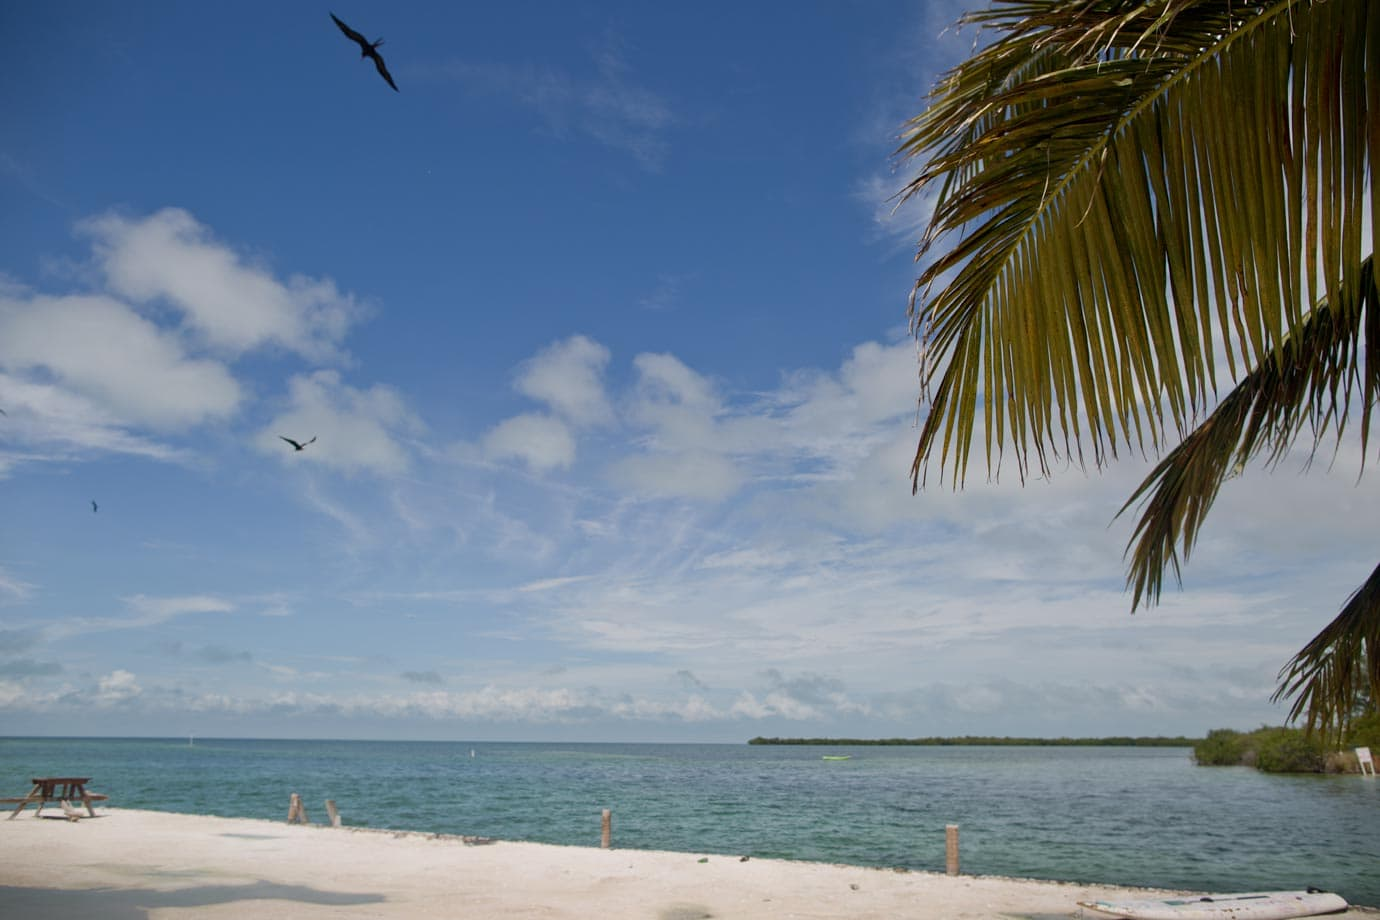 The water is never far away on Caye Caulker